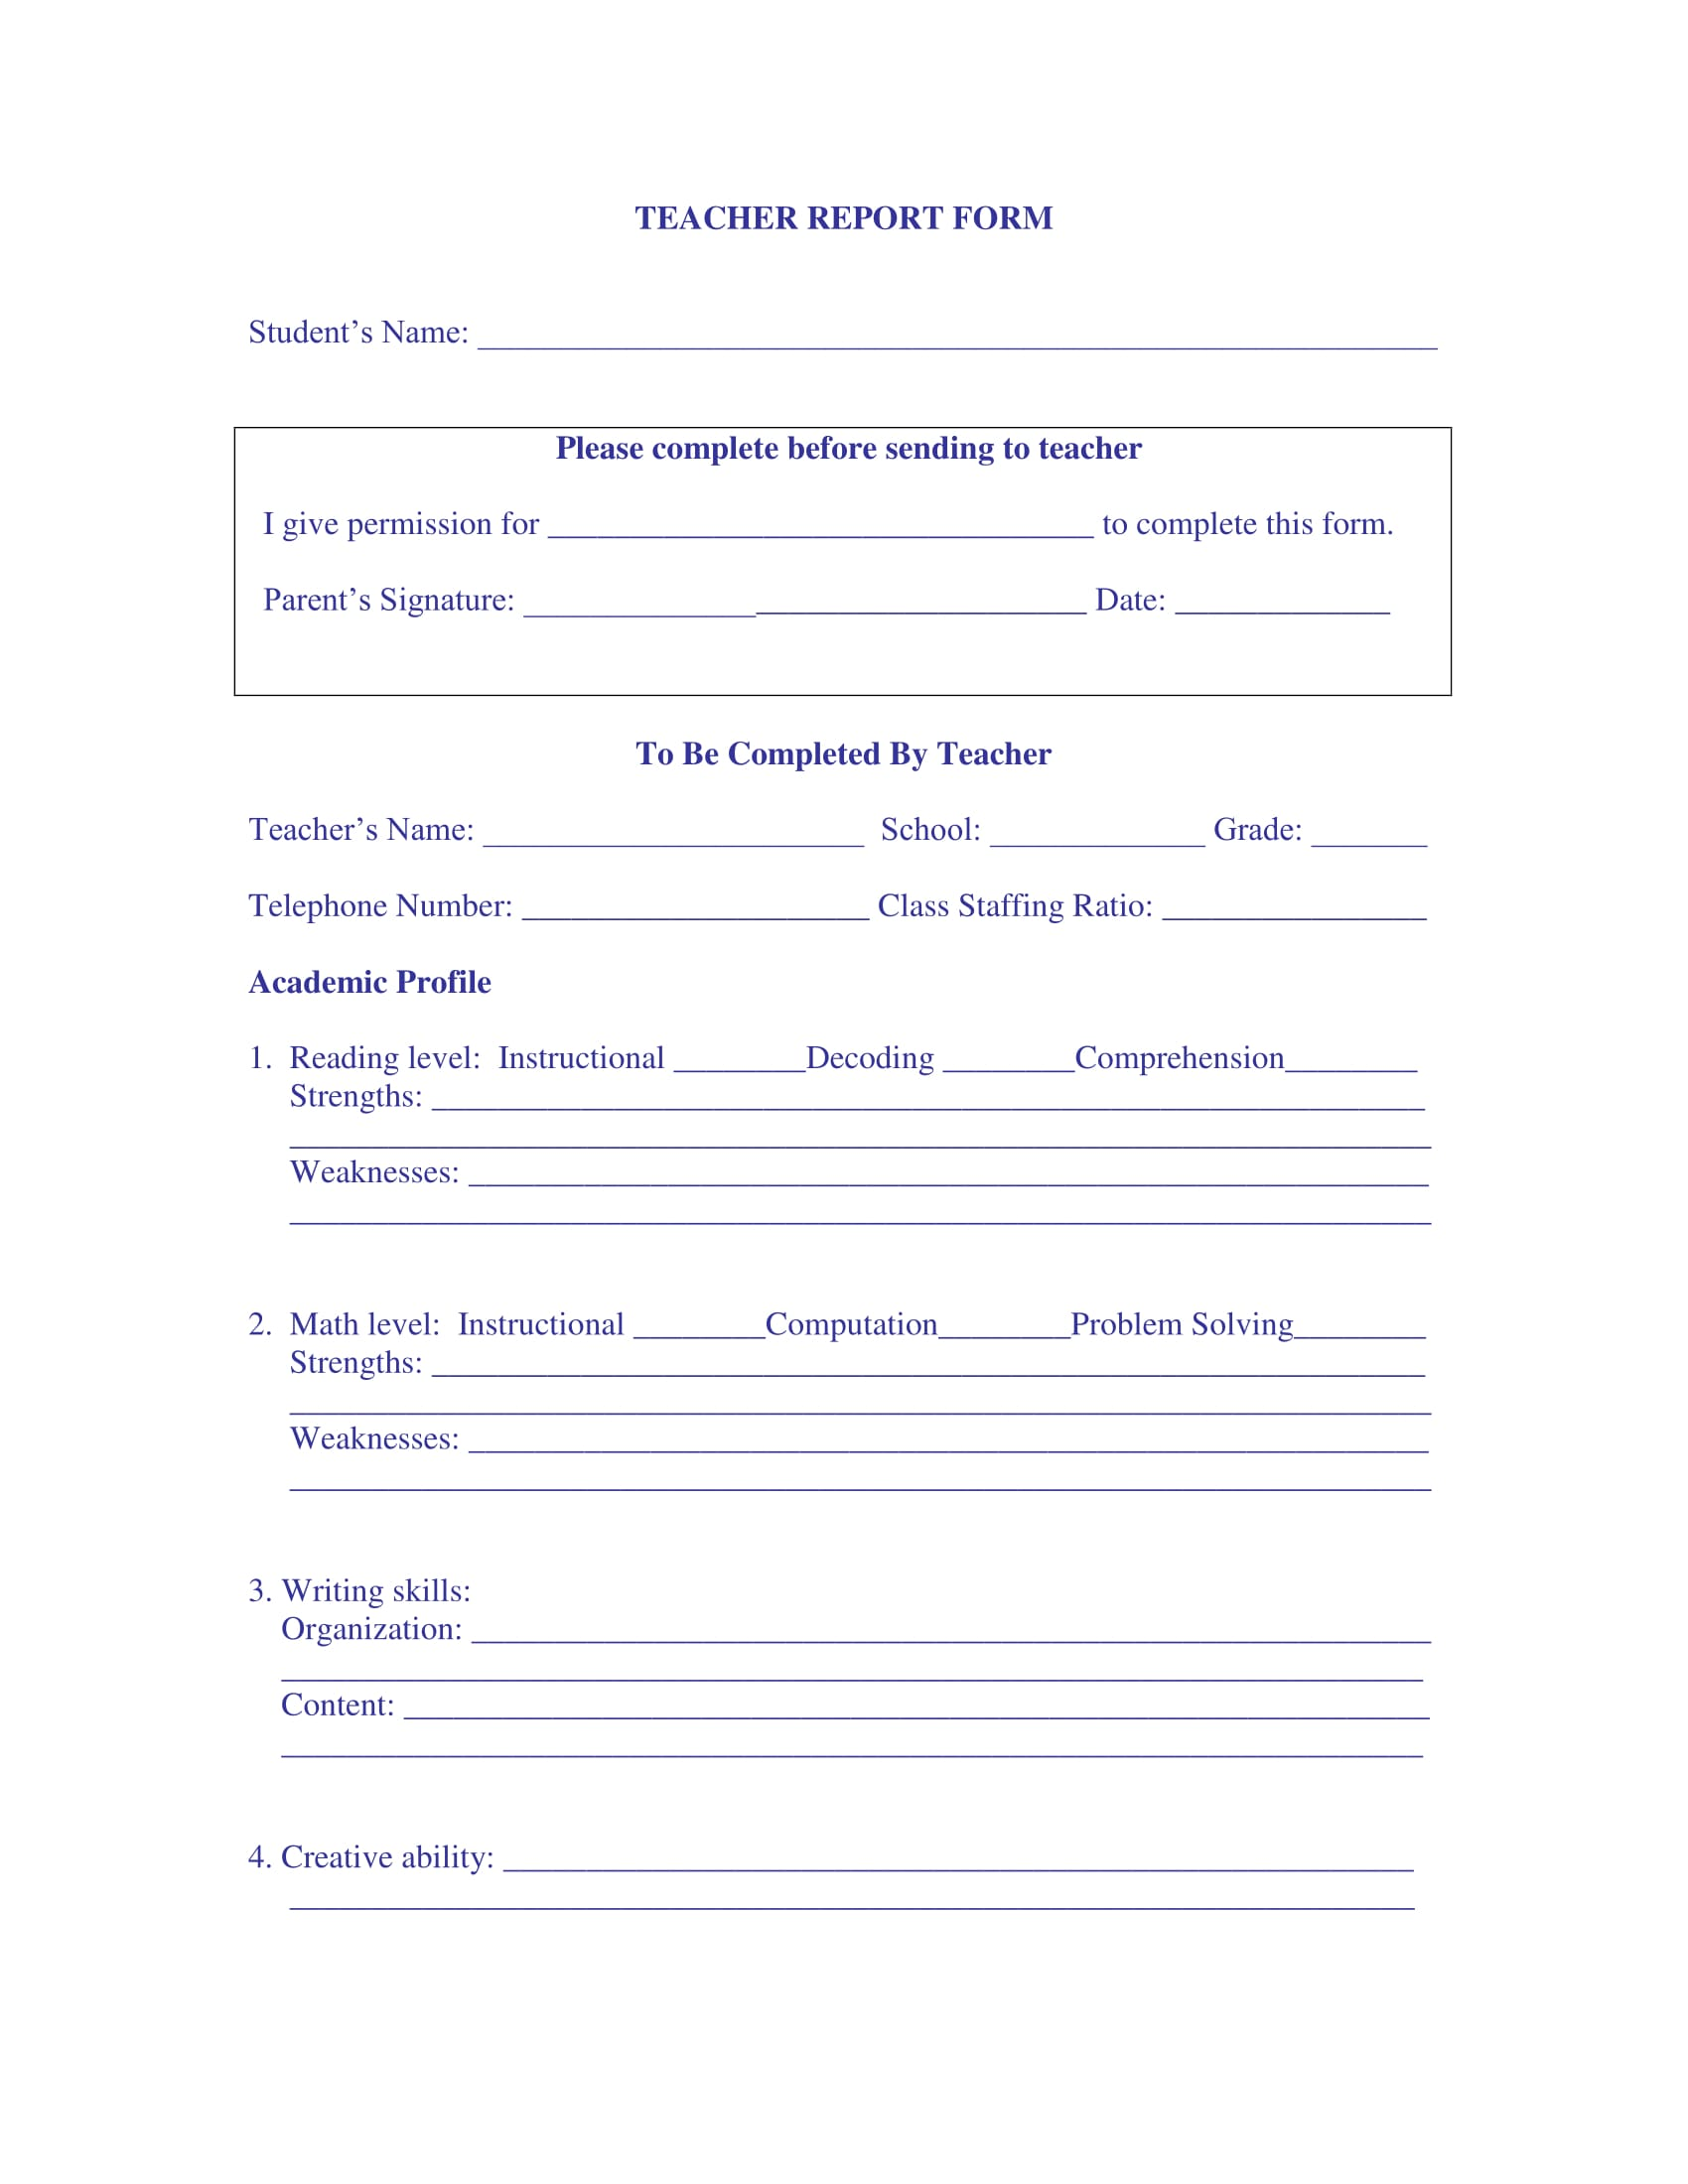 simple teacher report form 1